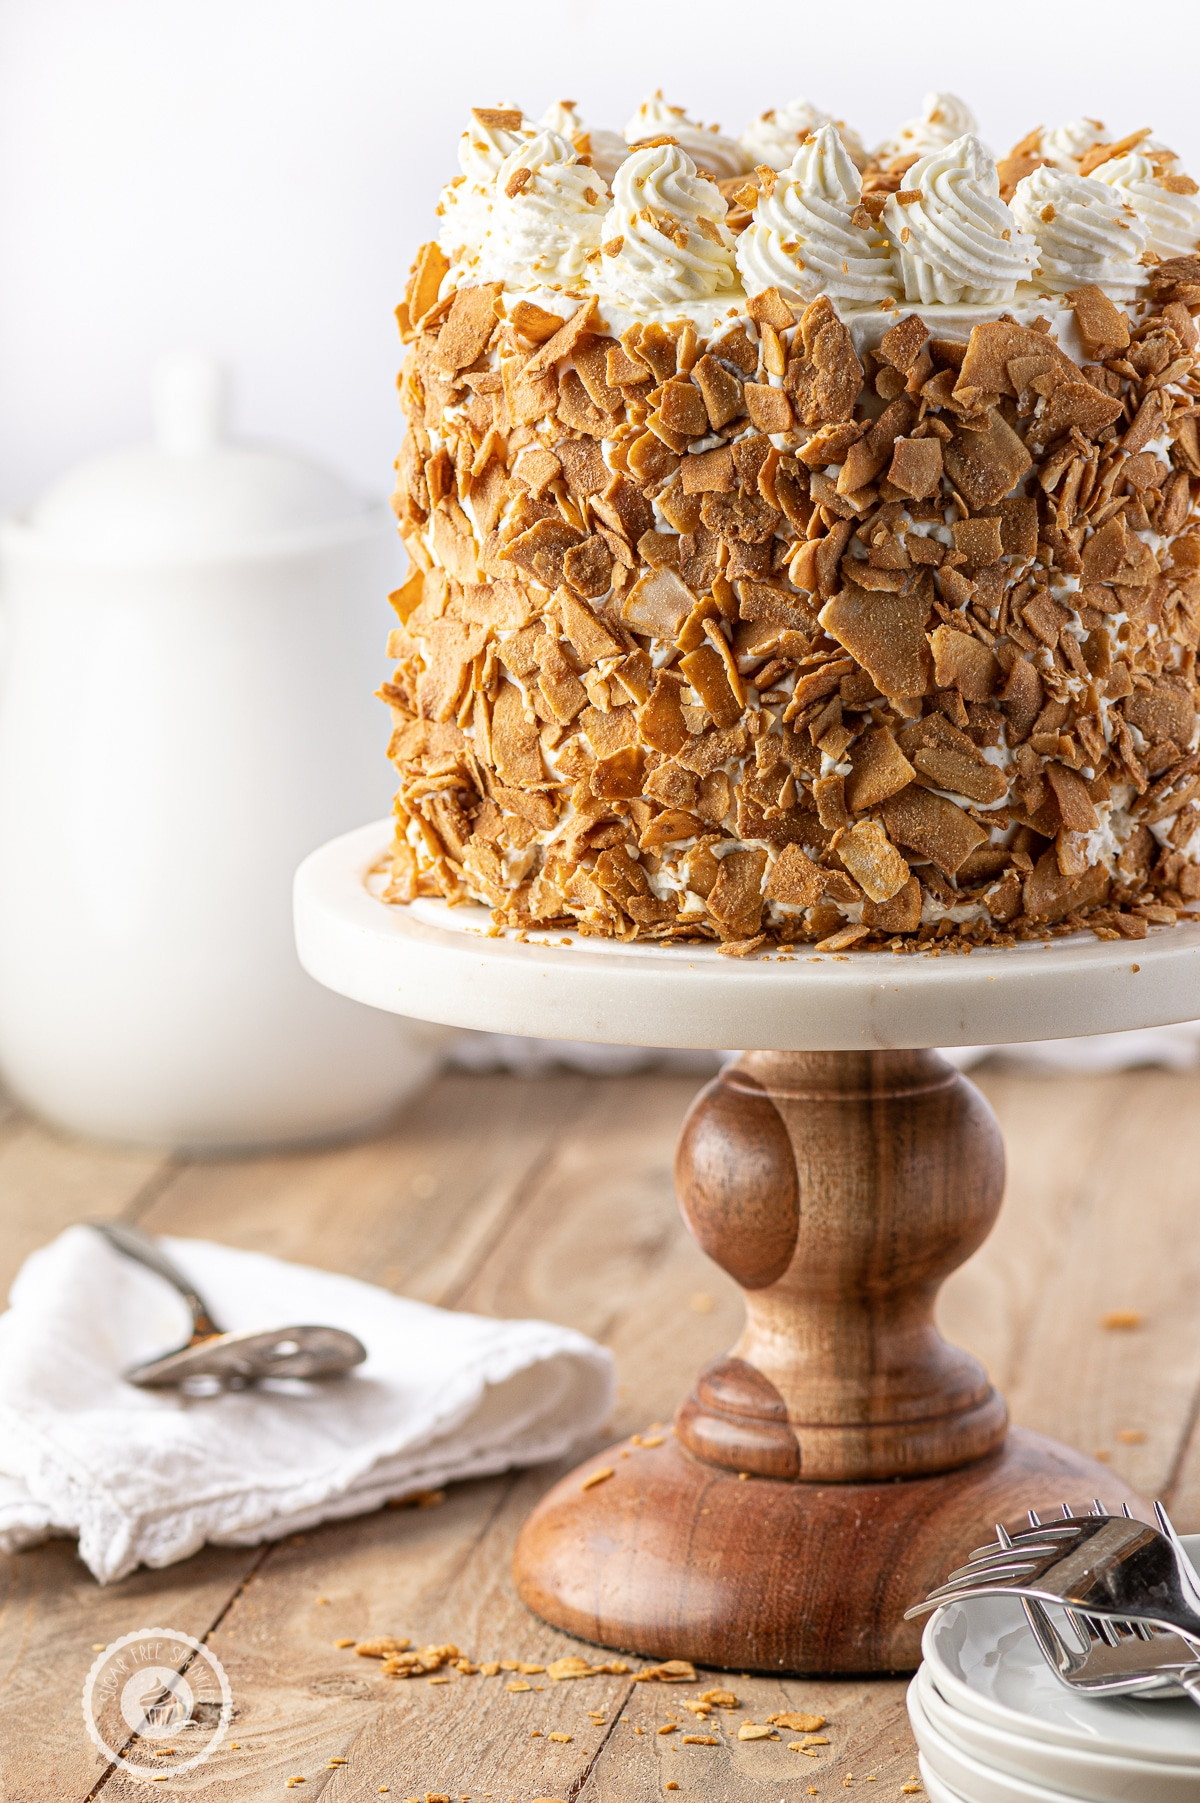 A low carb coconut cake with toasted bits of large flake coconut layered around the outside.  The cake is on a wooden and marble cake stand and a rustic wooden table.